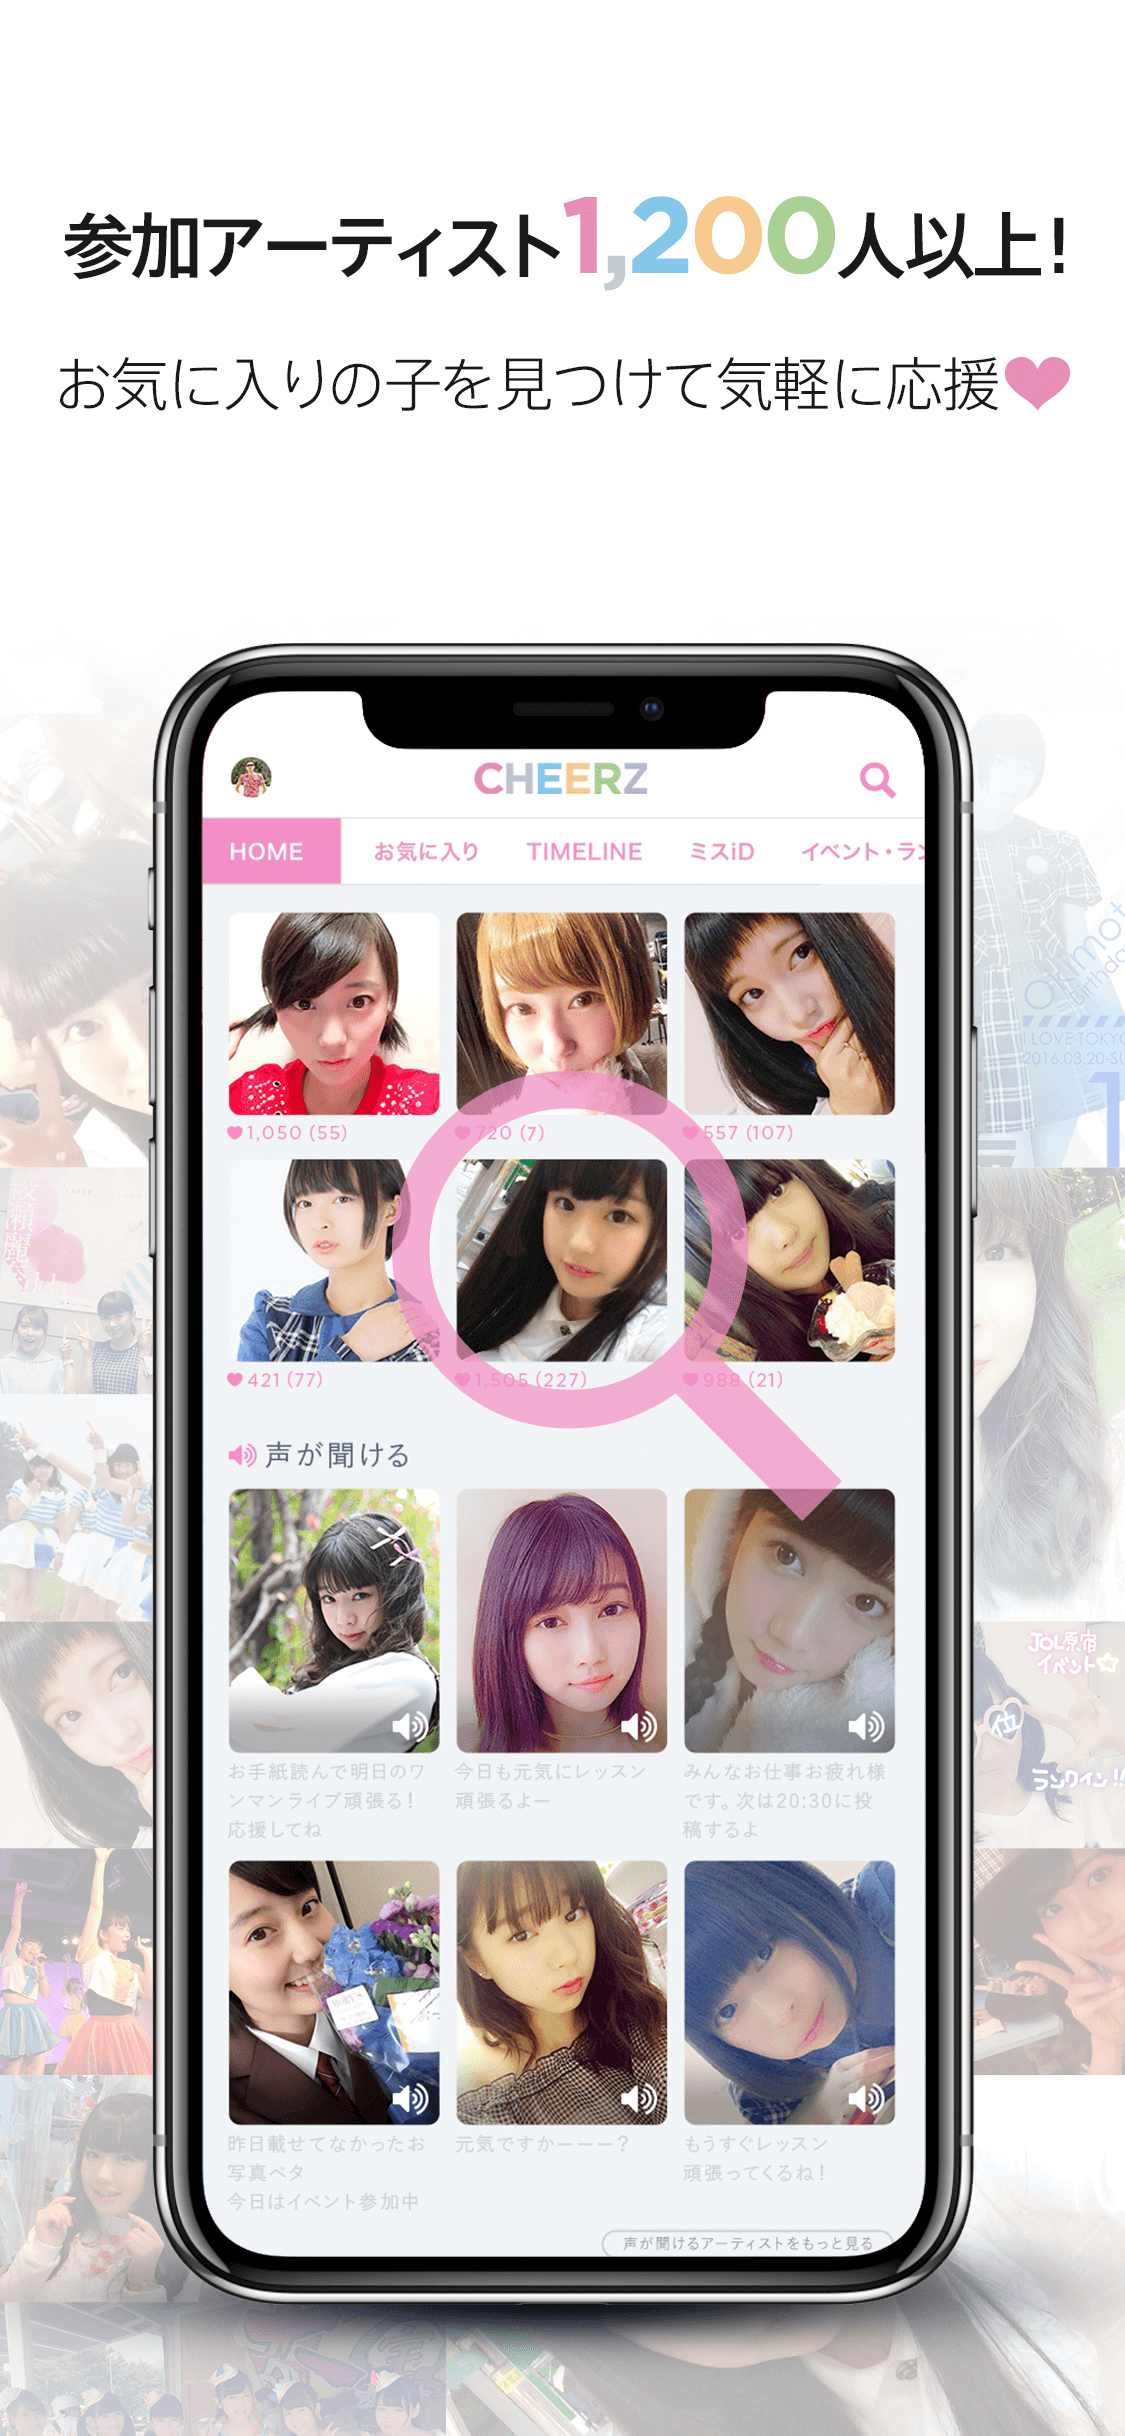 Screenshots from CHEERZ